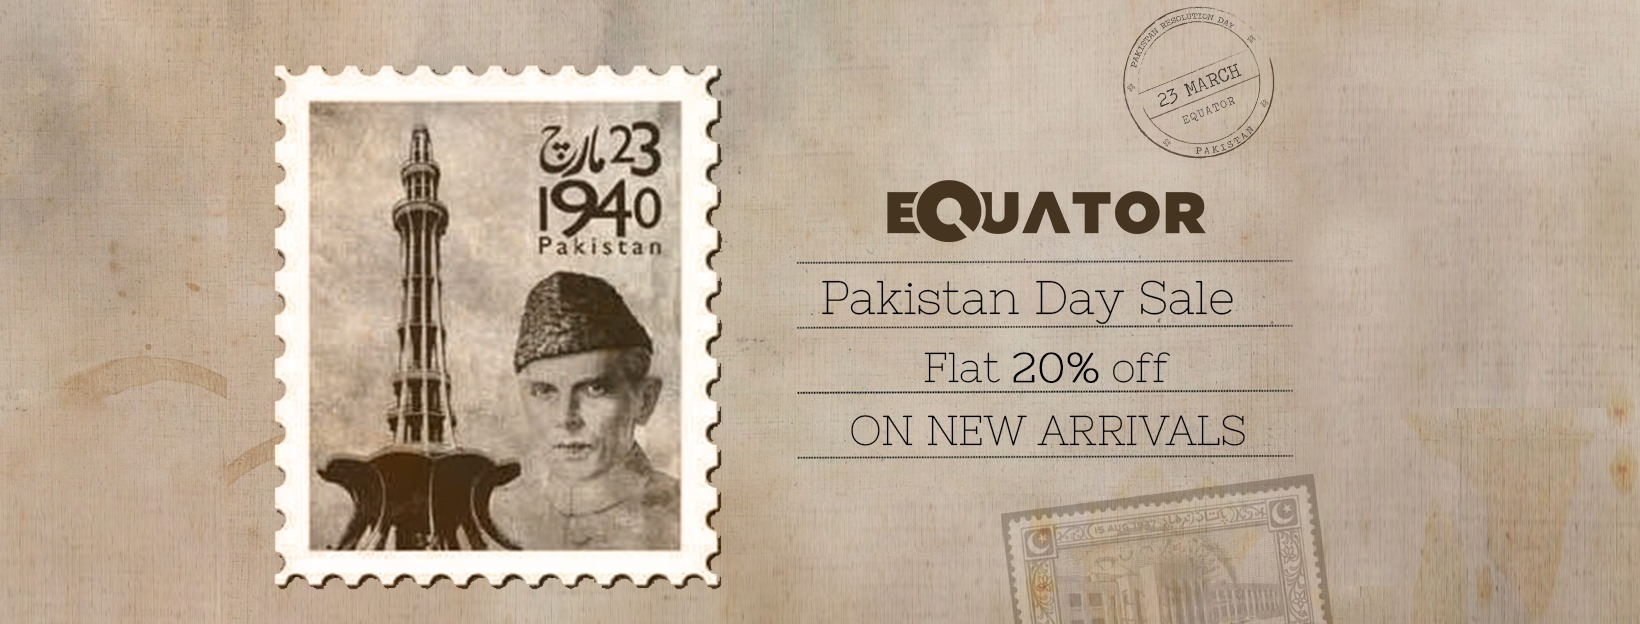 Equator - Pakistan Day Sale